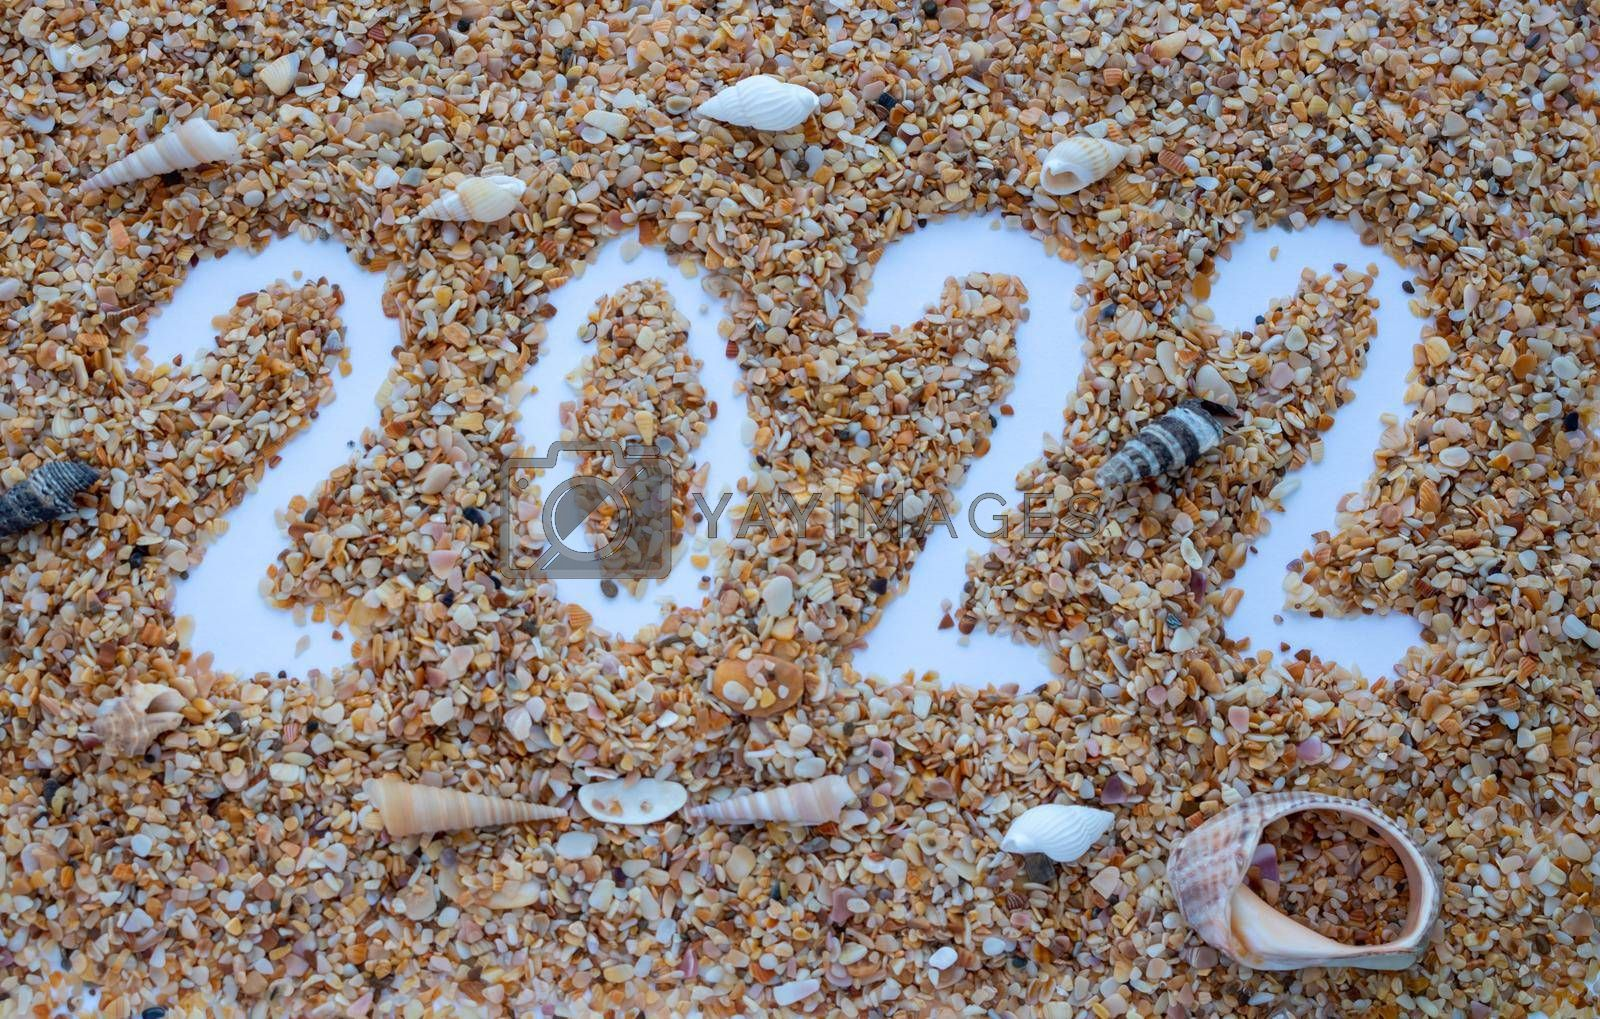 The number 2022 is drawn on the sand of shells.New Year's Calendar by lapushka62